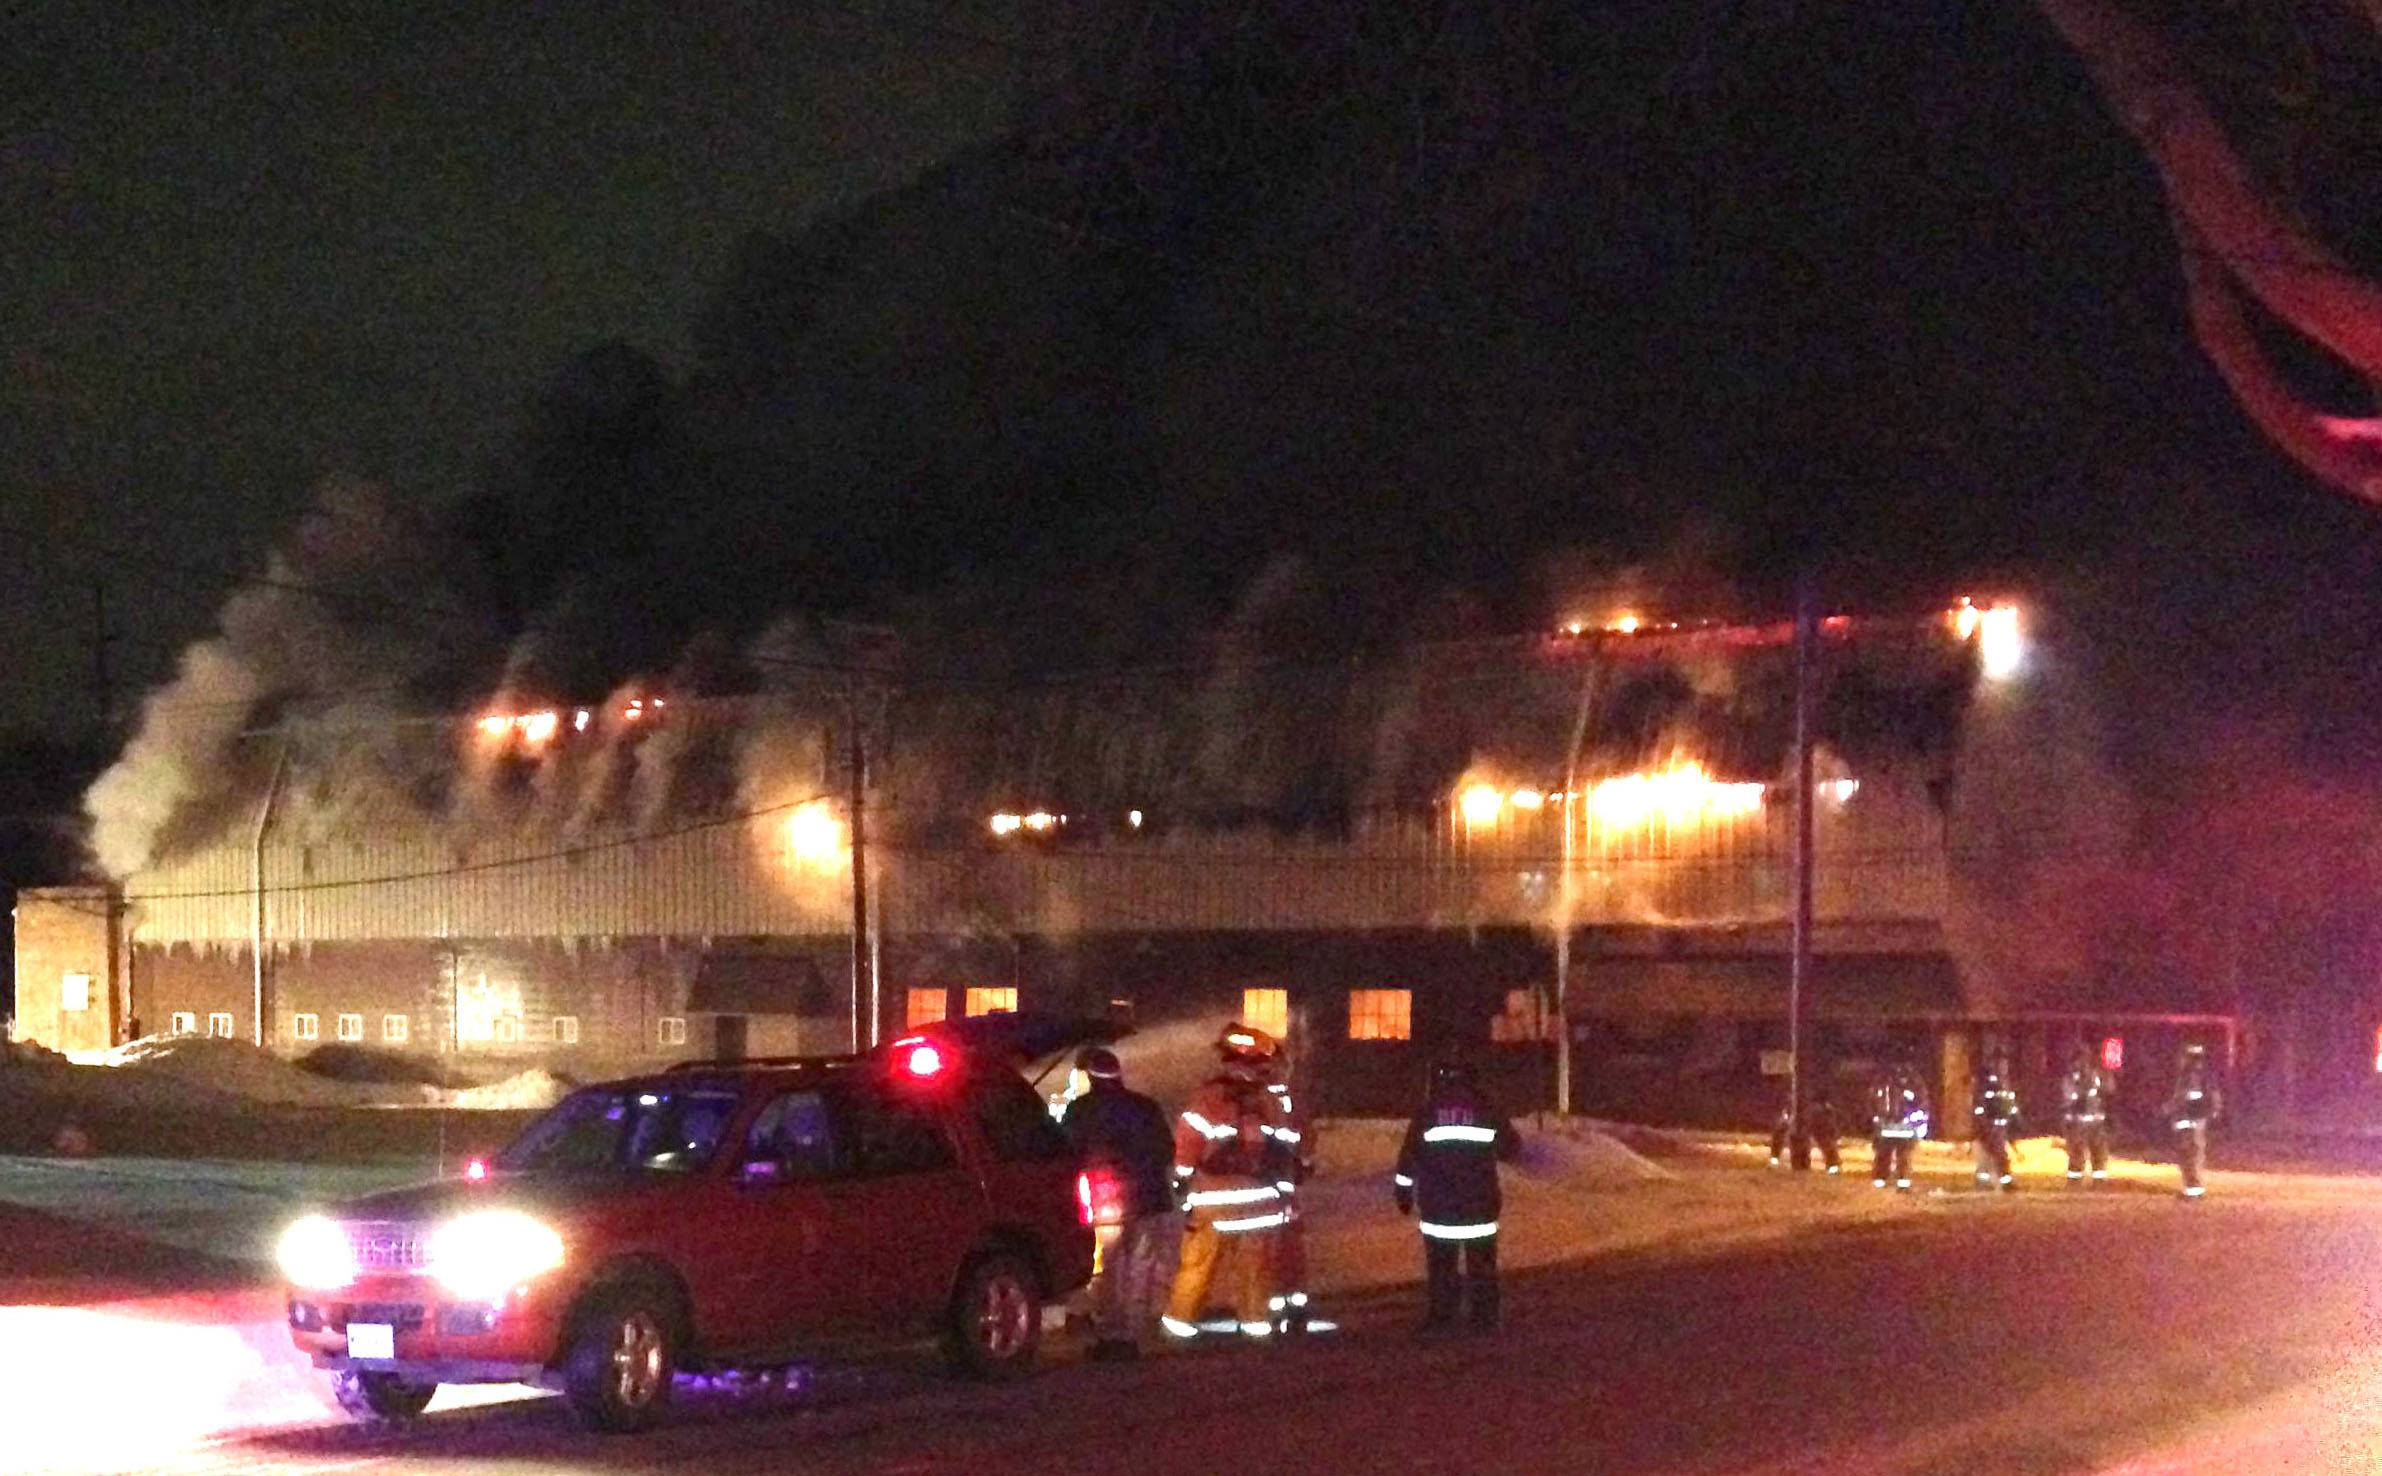 Firefighters respond to a blaze in an industrial building near Mallory Avenue and First Street in Batavia late Wednesday night.